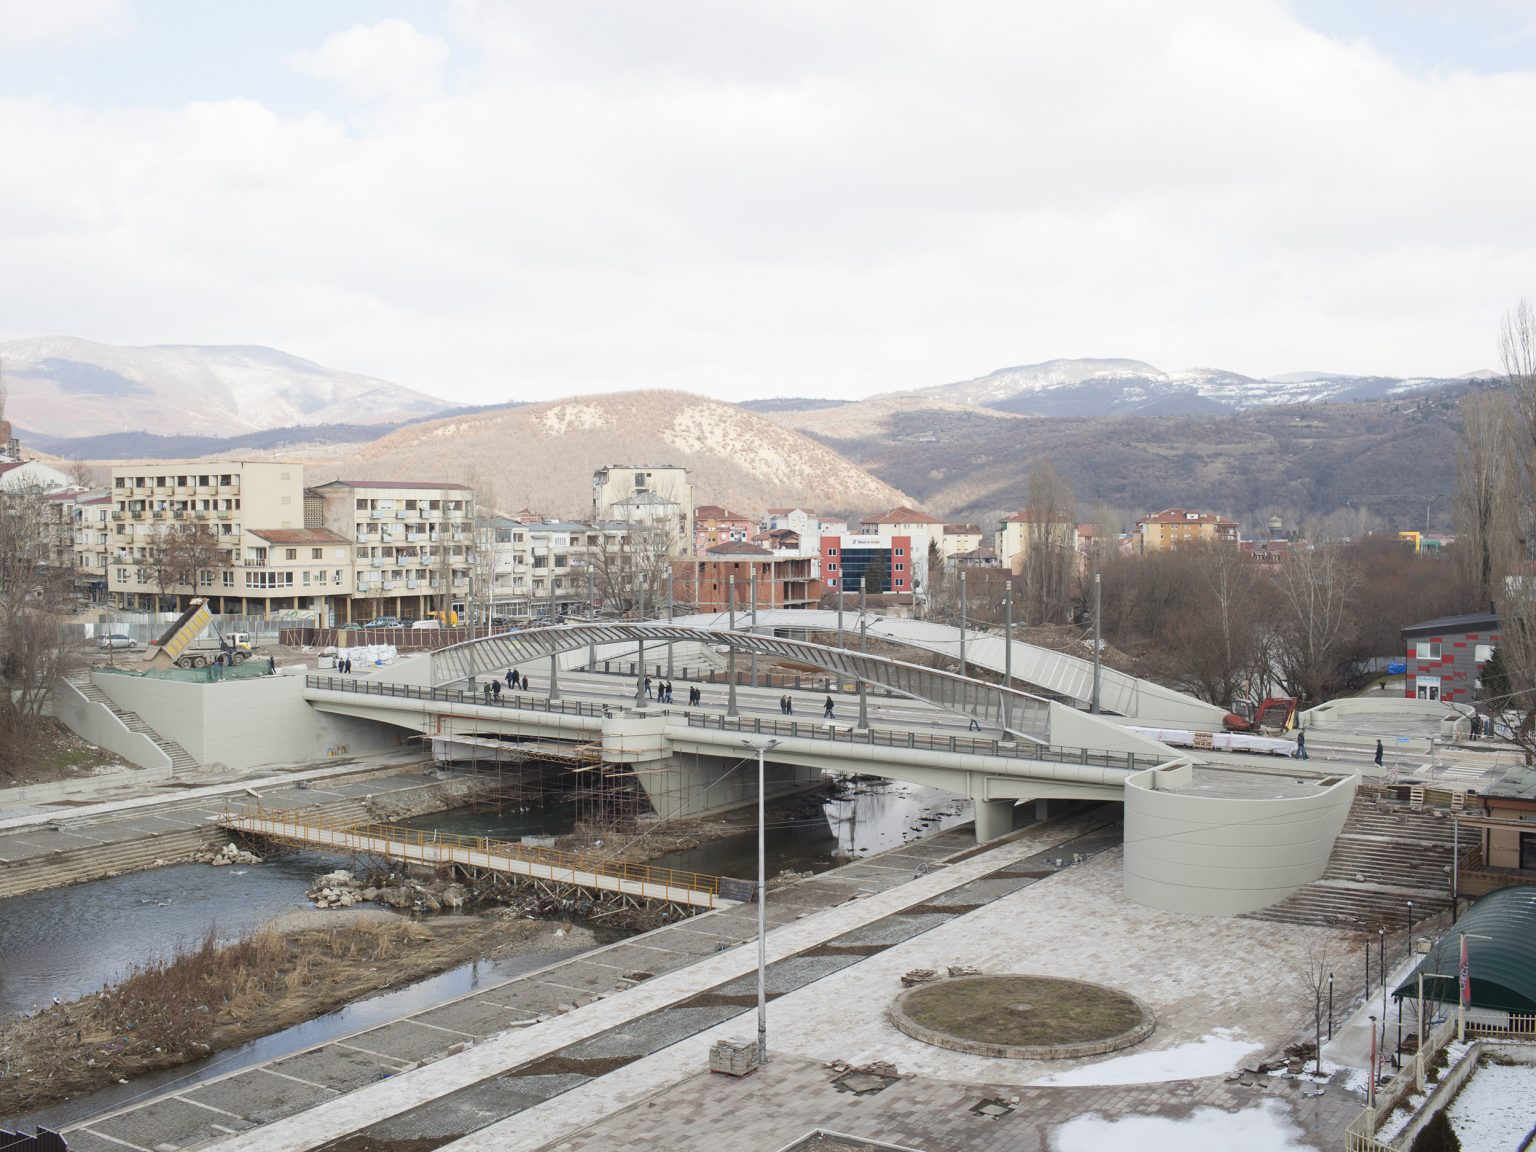 View of the Mitrovica / Kosovska Mitrovica bridge and the Ibar river that divides the northern Serbians-majority part of the town from the southern Albanian-majority one.